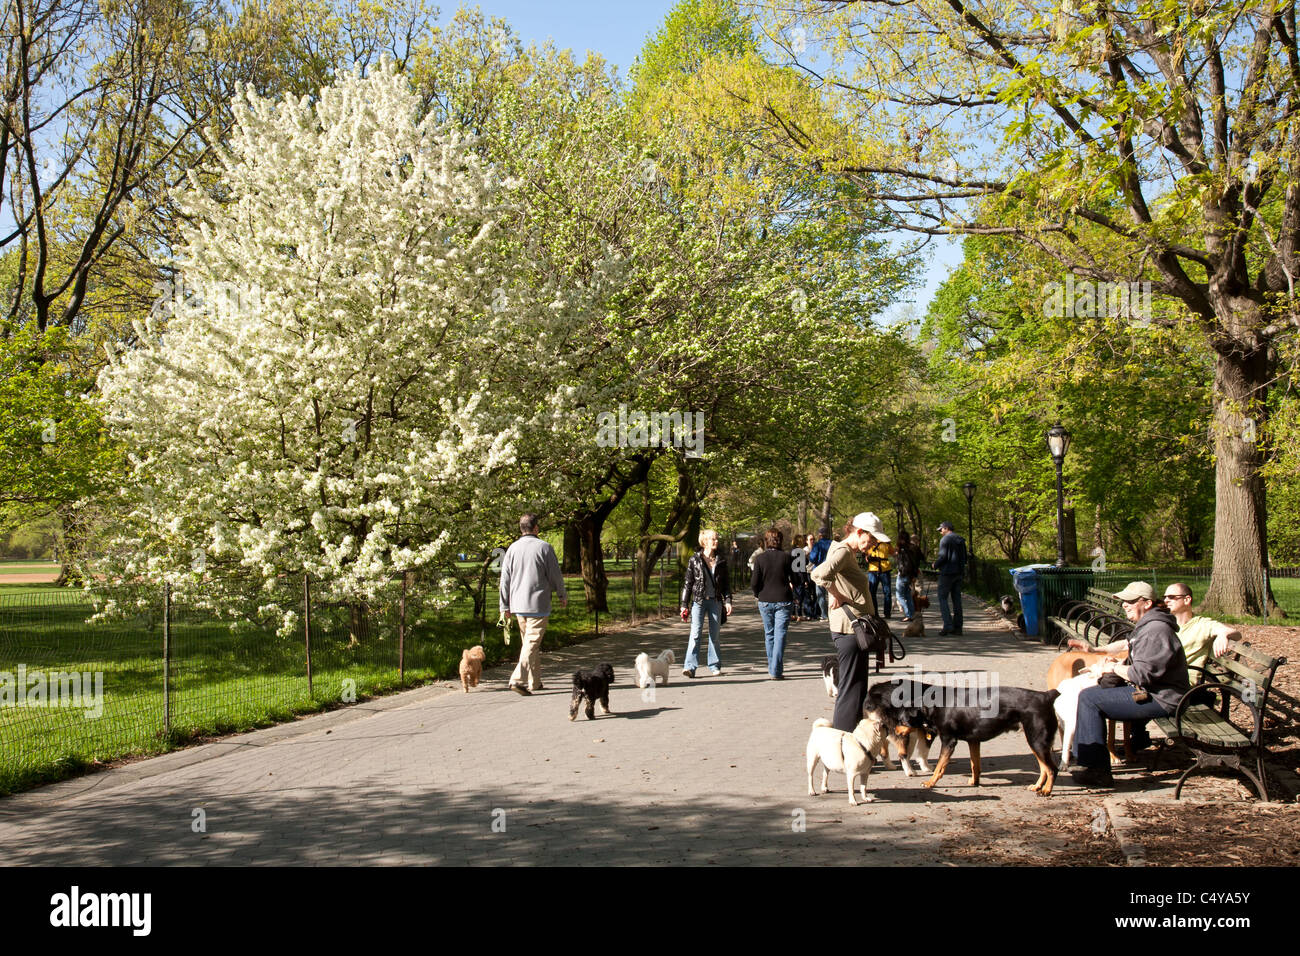 Dogs and Owners, Central Park, NYC - Stock Image